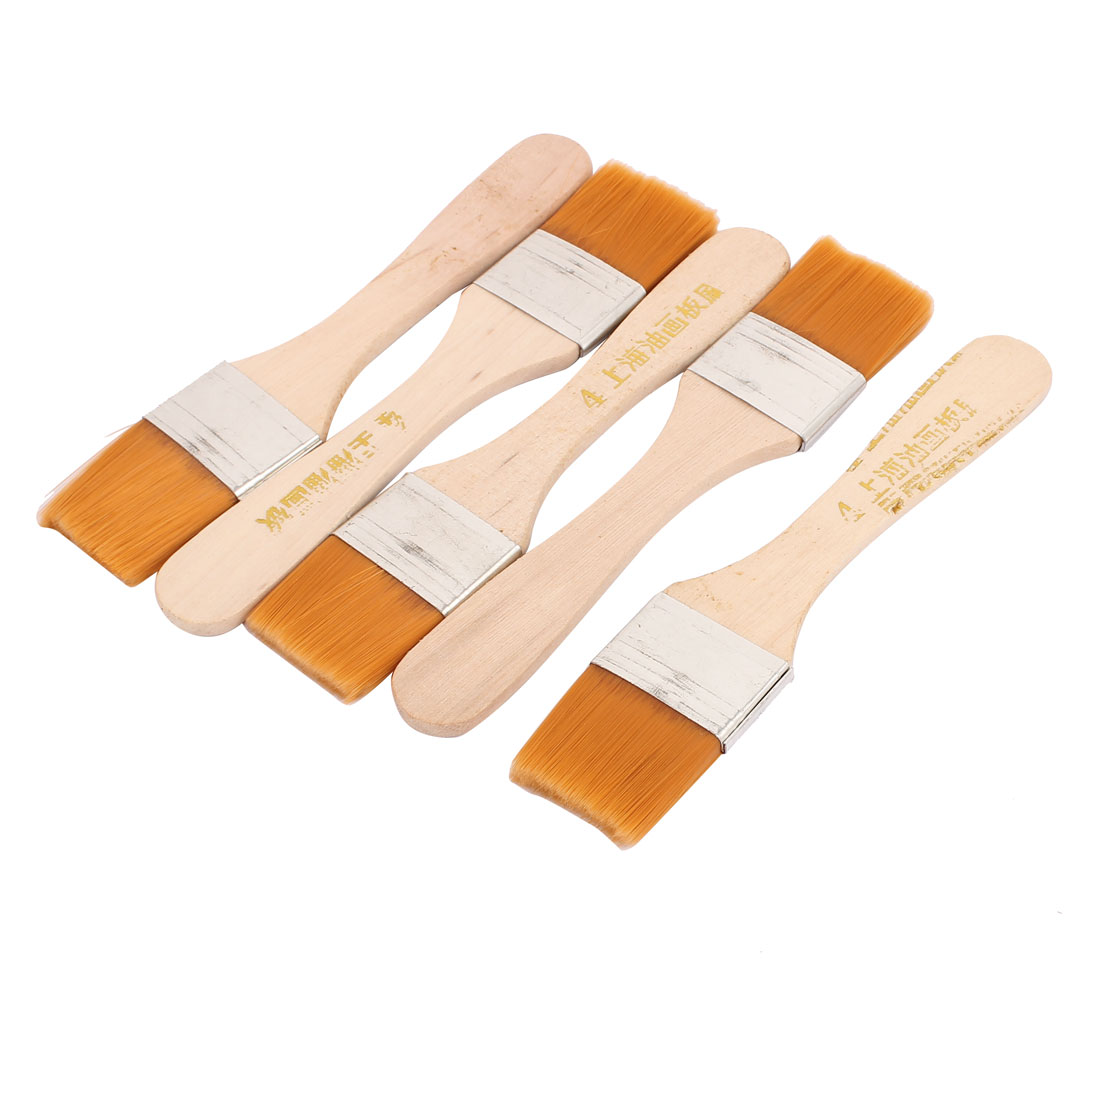 Painter Artists Wooden Handle Oil Painting Paint Drawing Brush Tool 5 Pcs